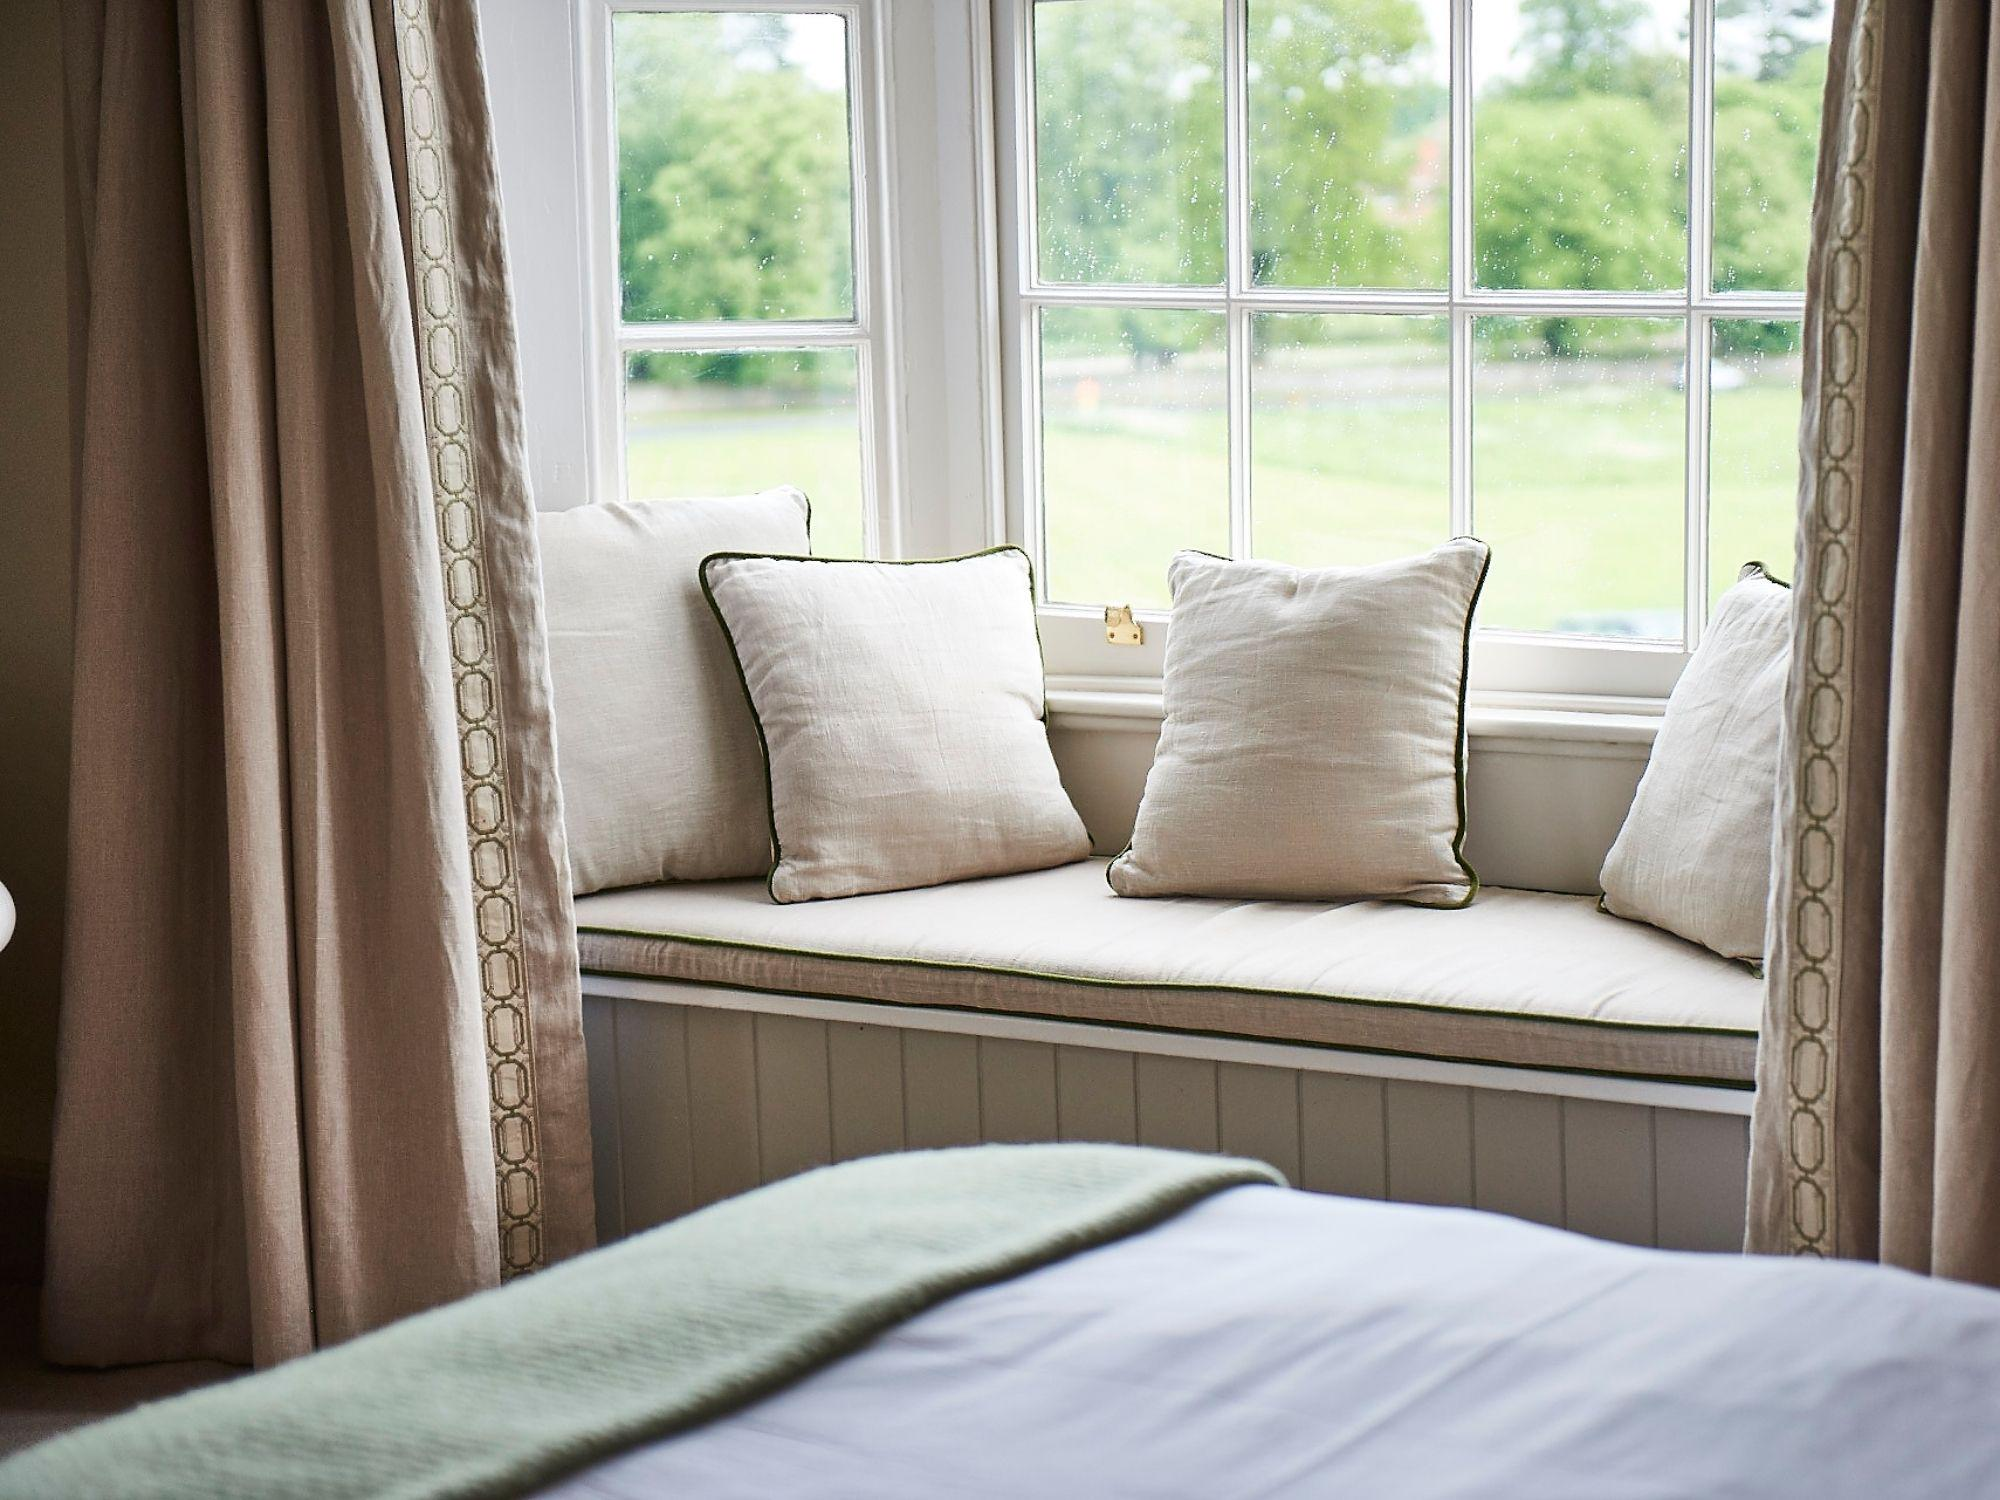 Hotels in Long Melford holidays at Cool Places